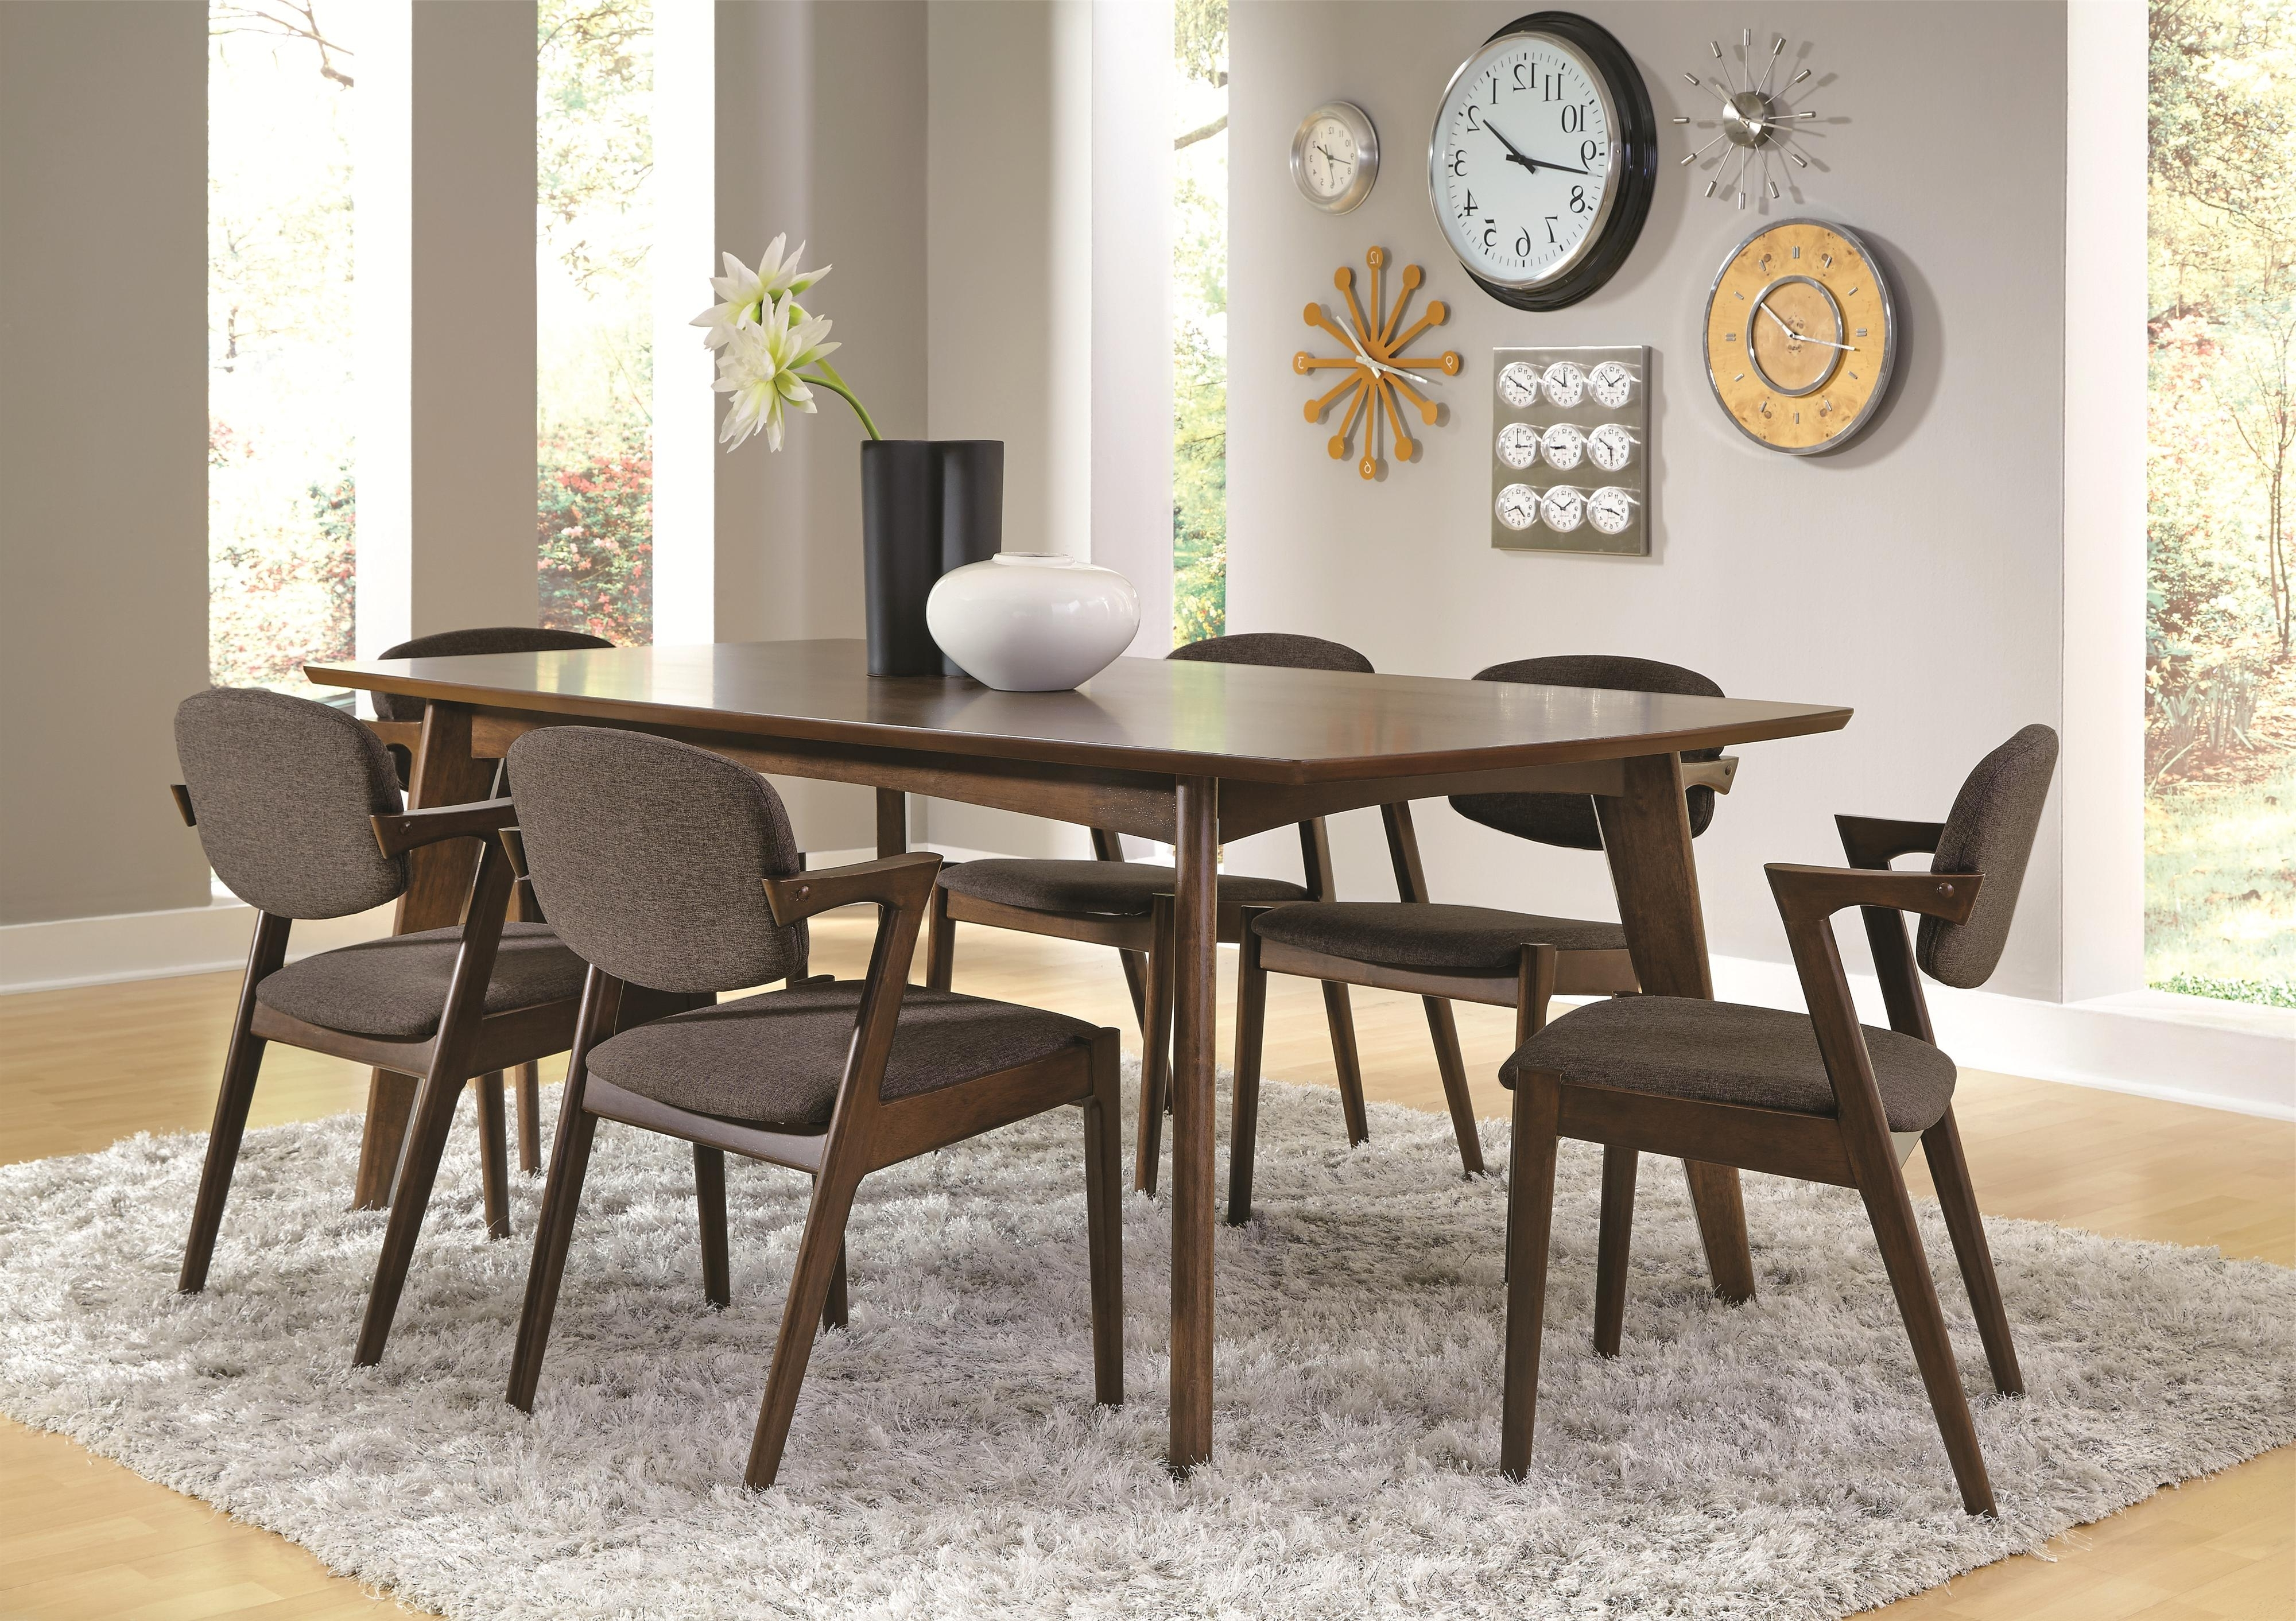 Contemporary Dining Tables Sets Inside Preferred Modern Dining Room Sets And Chairs (View 6 of 25)